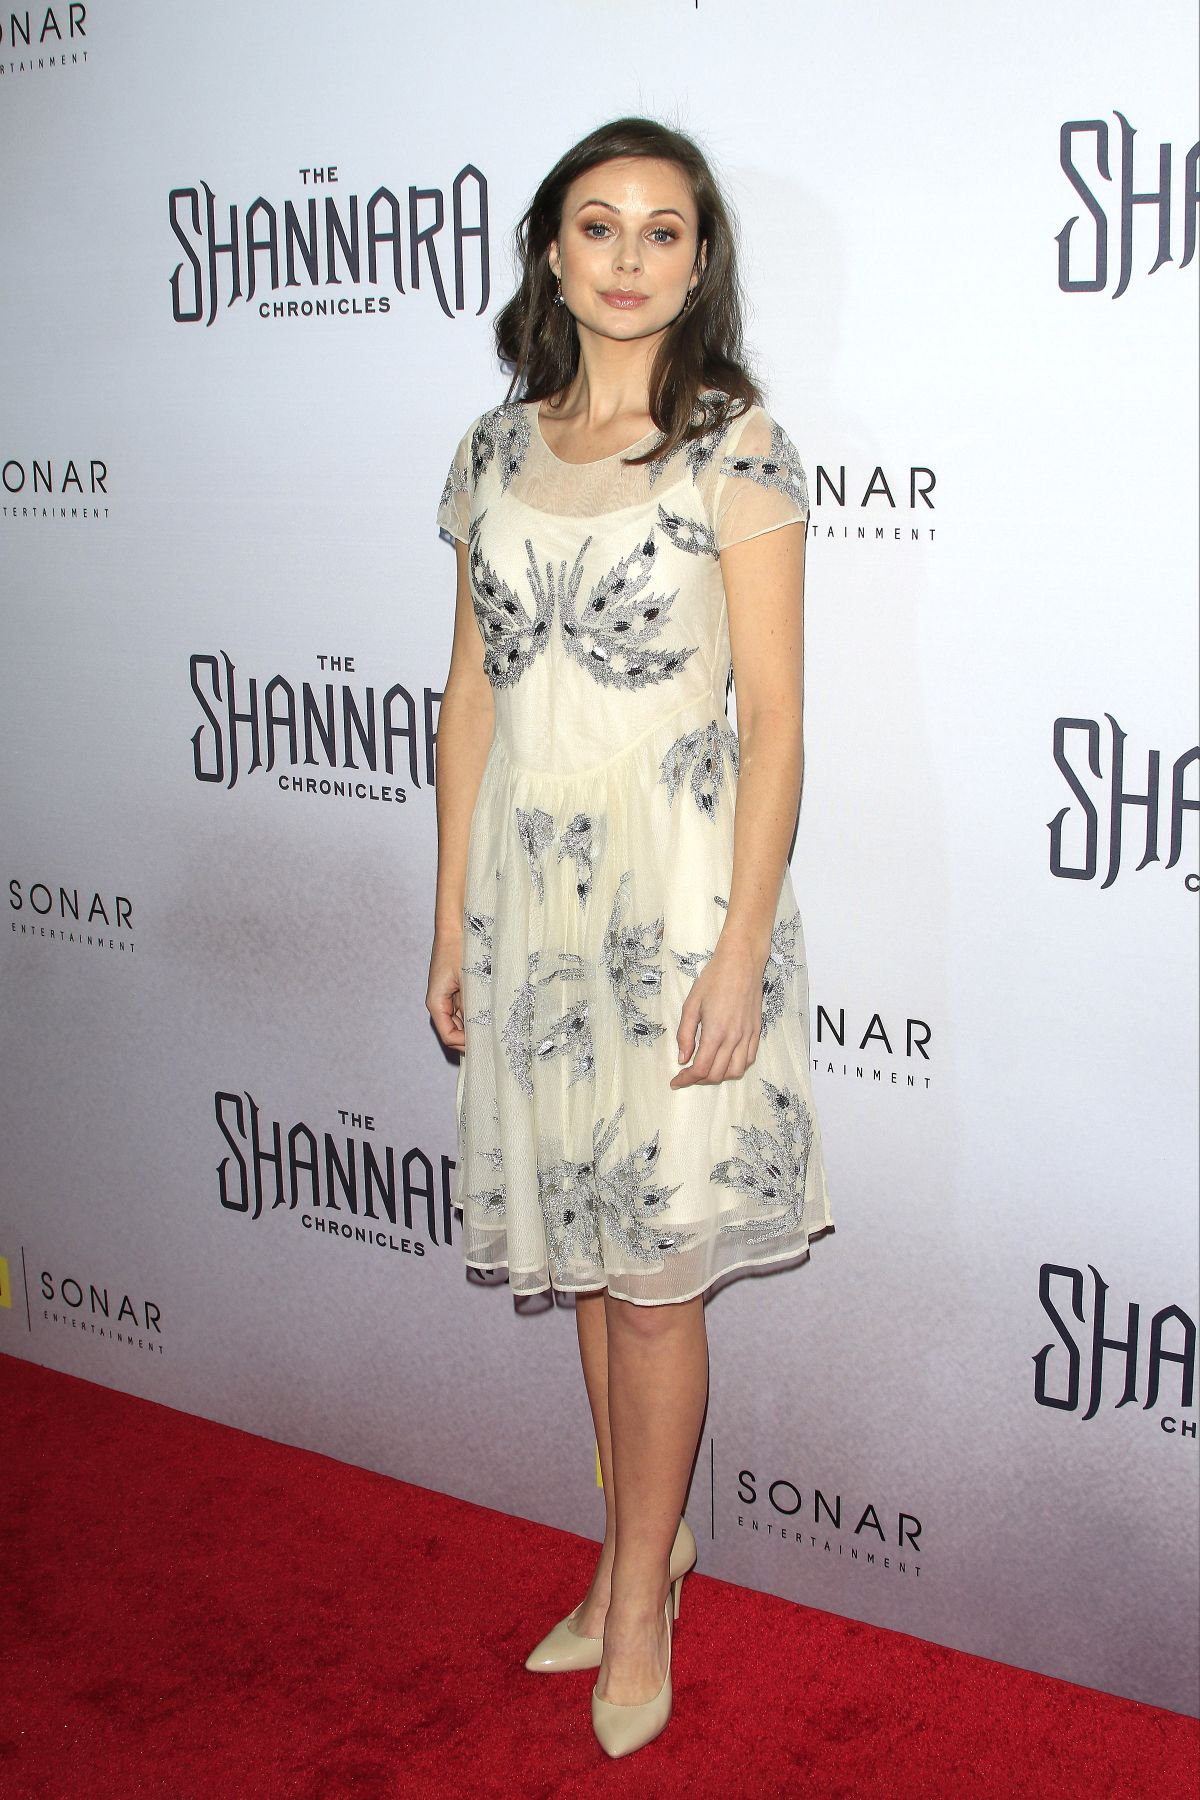 Brooke Williams At The Shannara Chronicles Premiere Party In LA